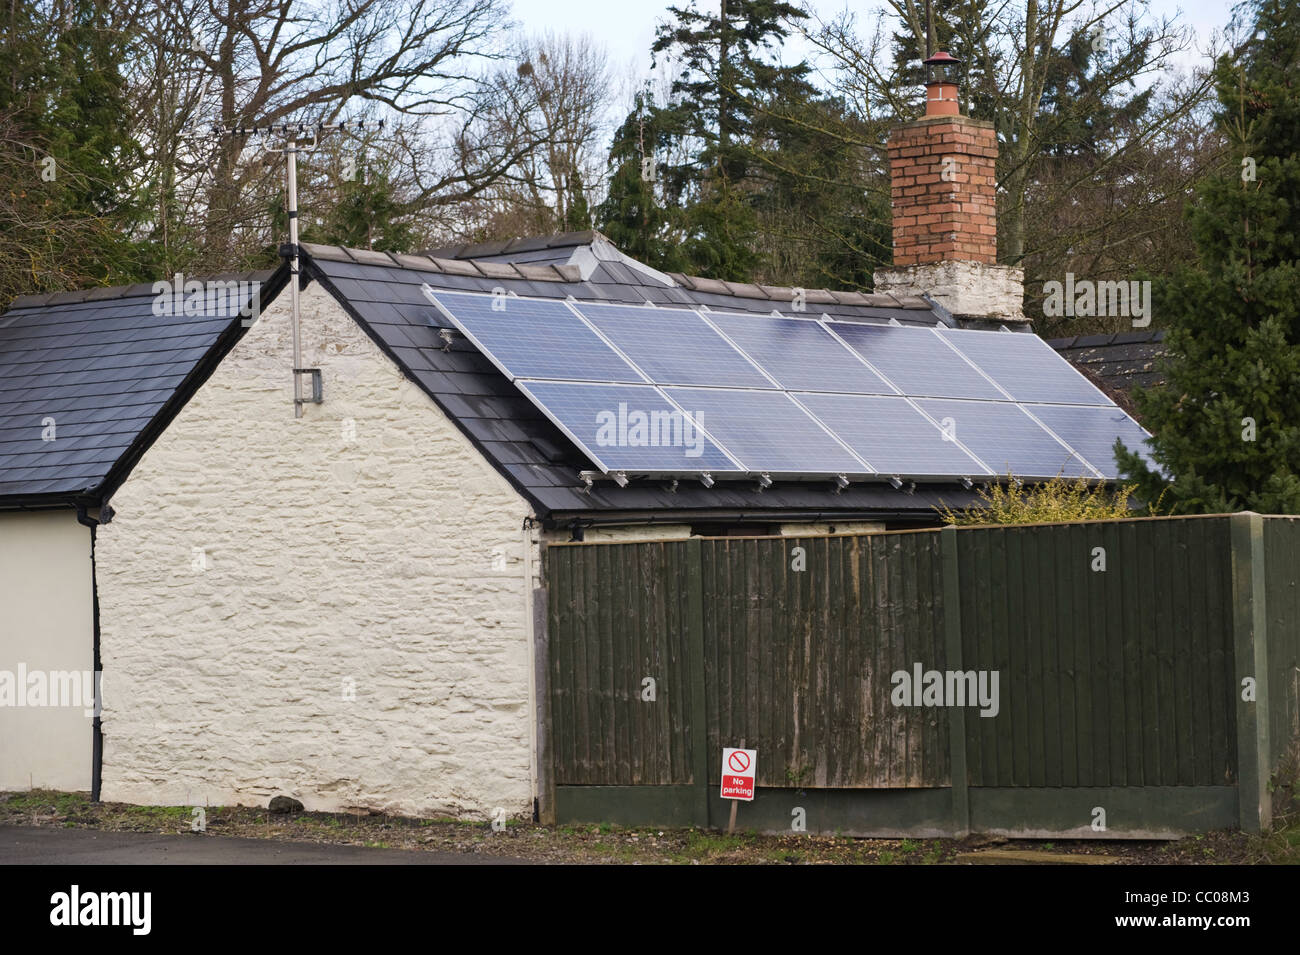 Solar panels fitted to roof of rural detached cottage in Winforton Herefordshire England UK - Stock Image